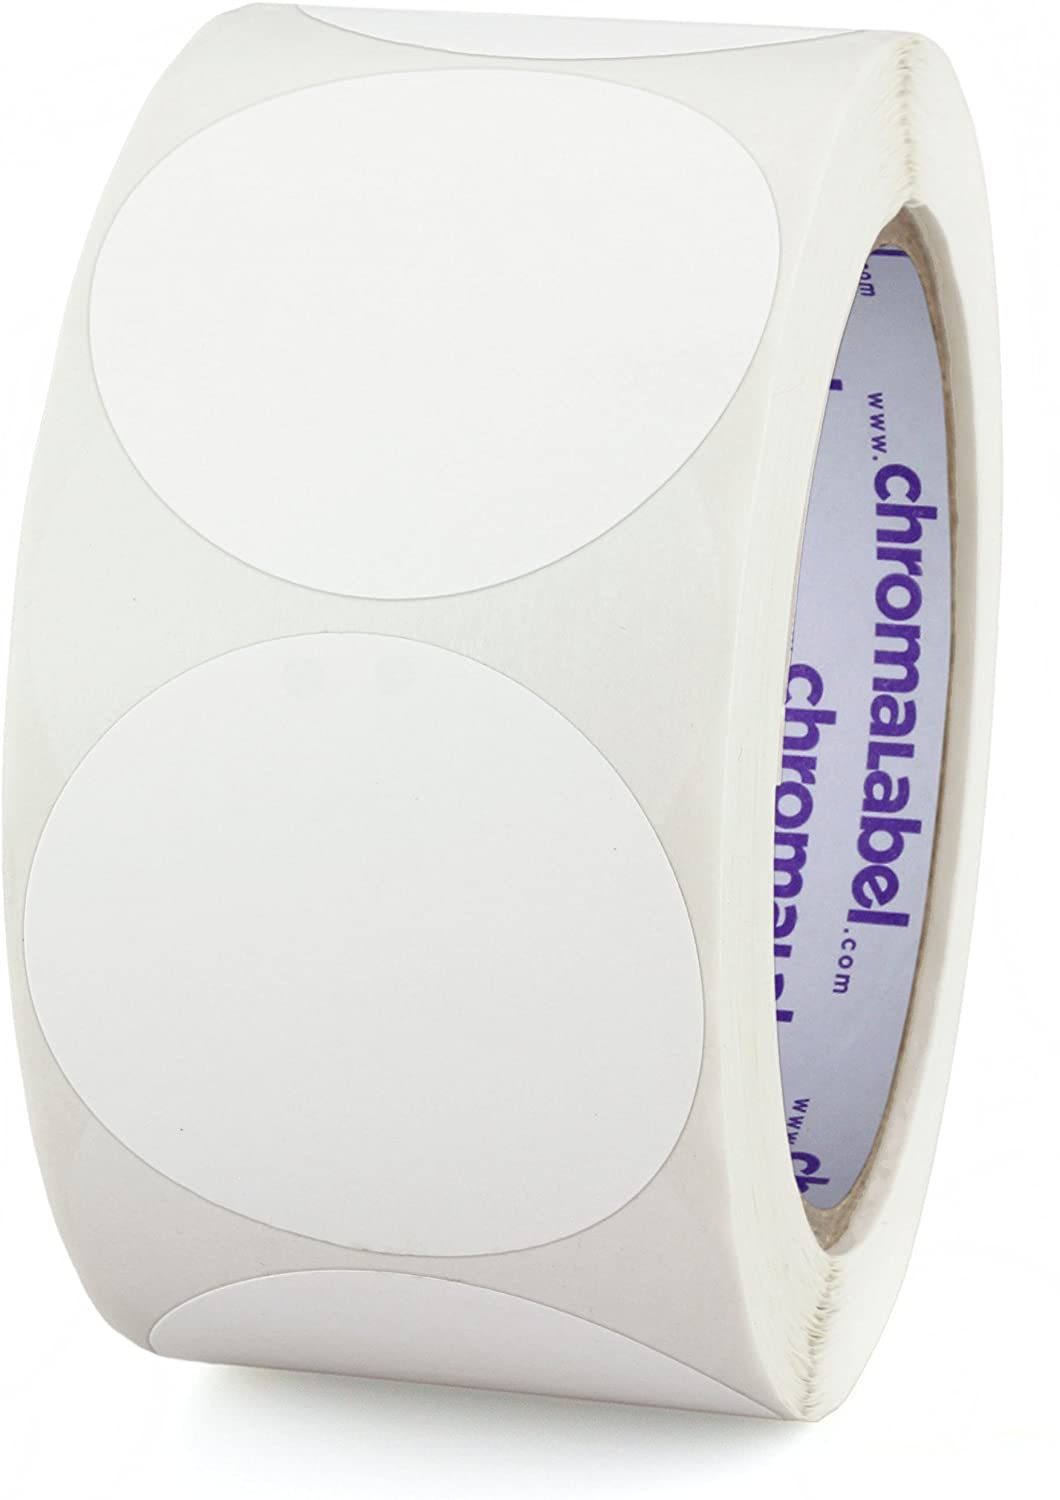 ChromaLabel 2 Inch Round Permanent Color-Code Dot Stickers, 500 per Roll, White